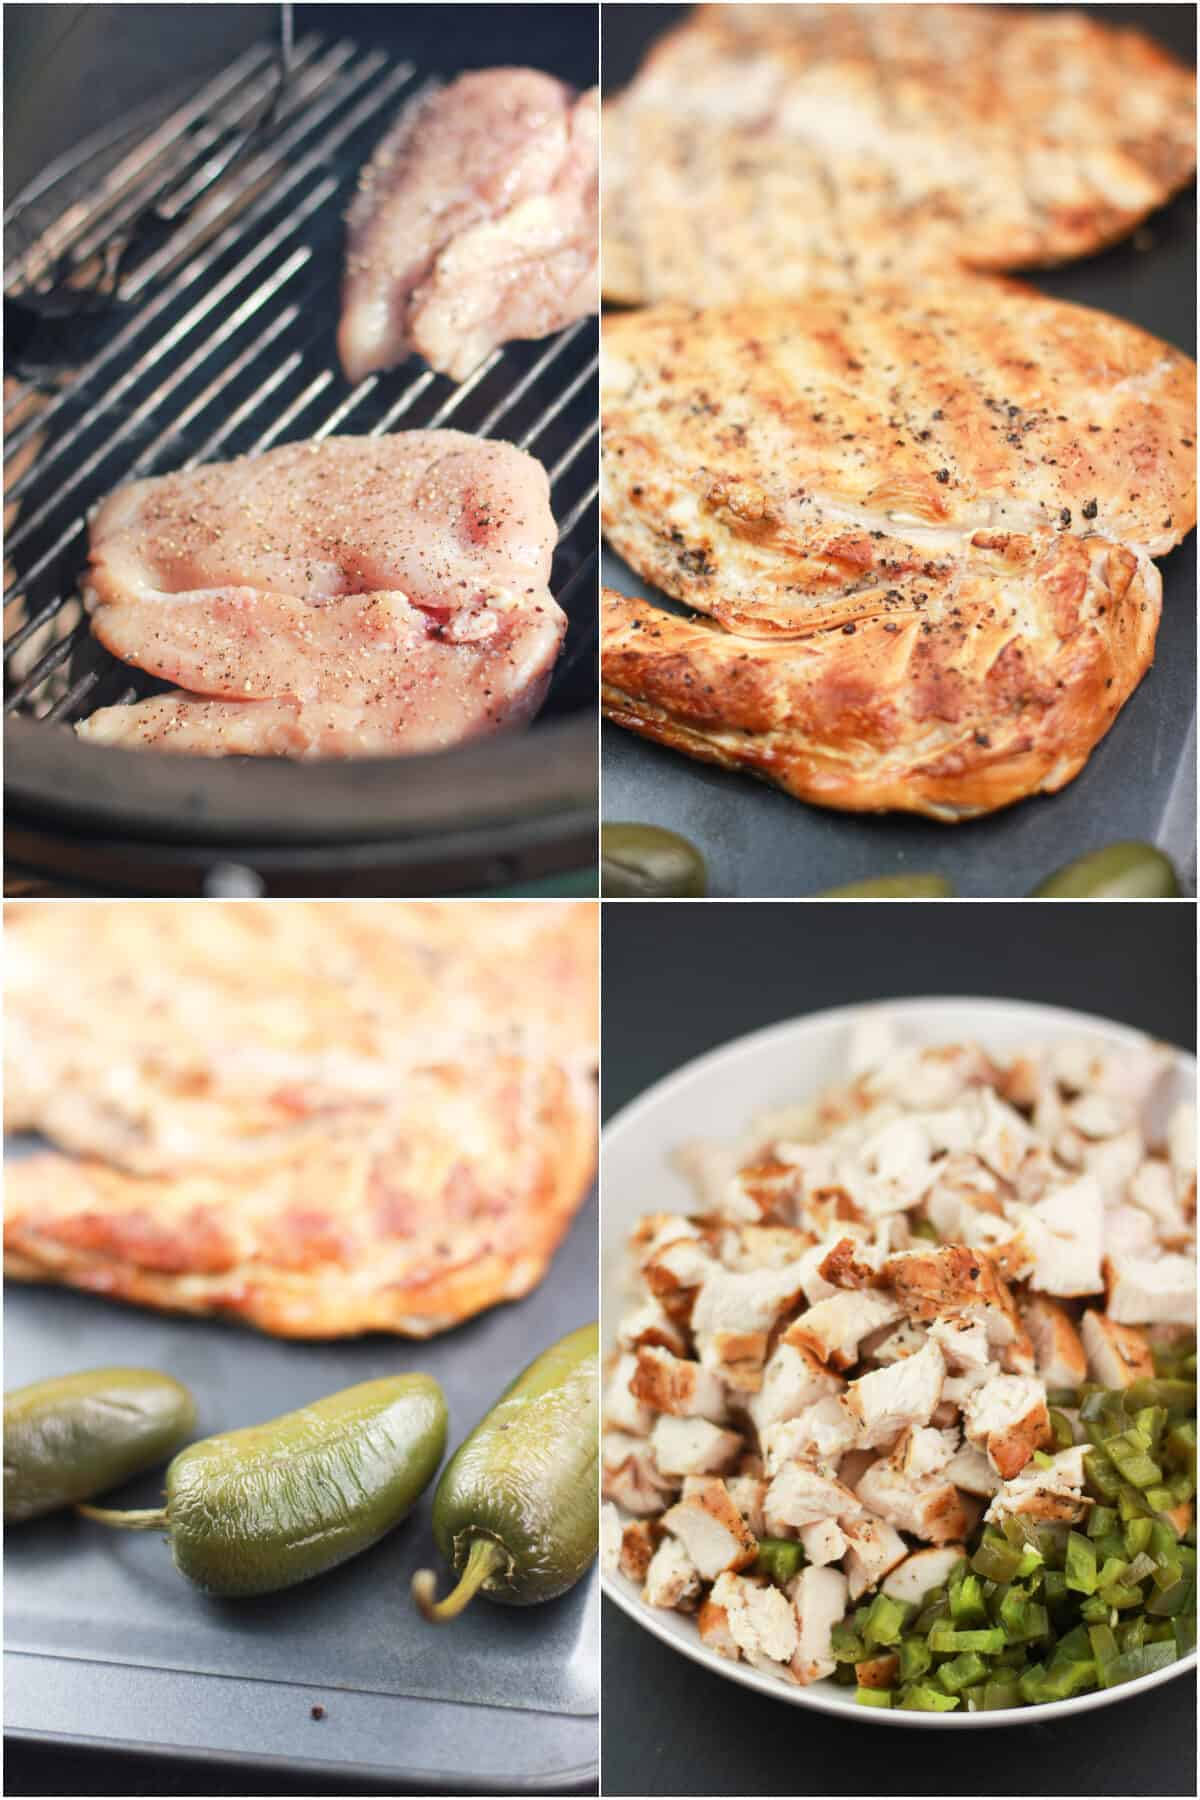 collage of 4 photos, clockwise: uncooked chicken on grill grate; cooked chicken on bake sheet; smoked jalapenos on bake sheet; chopped chicken and jalapeno in white bowl